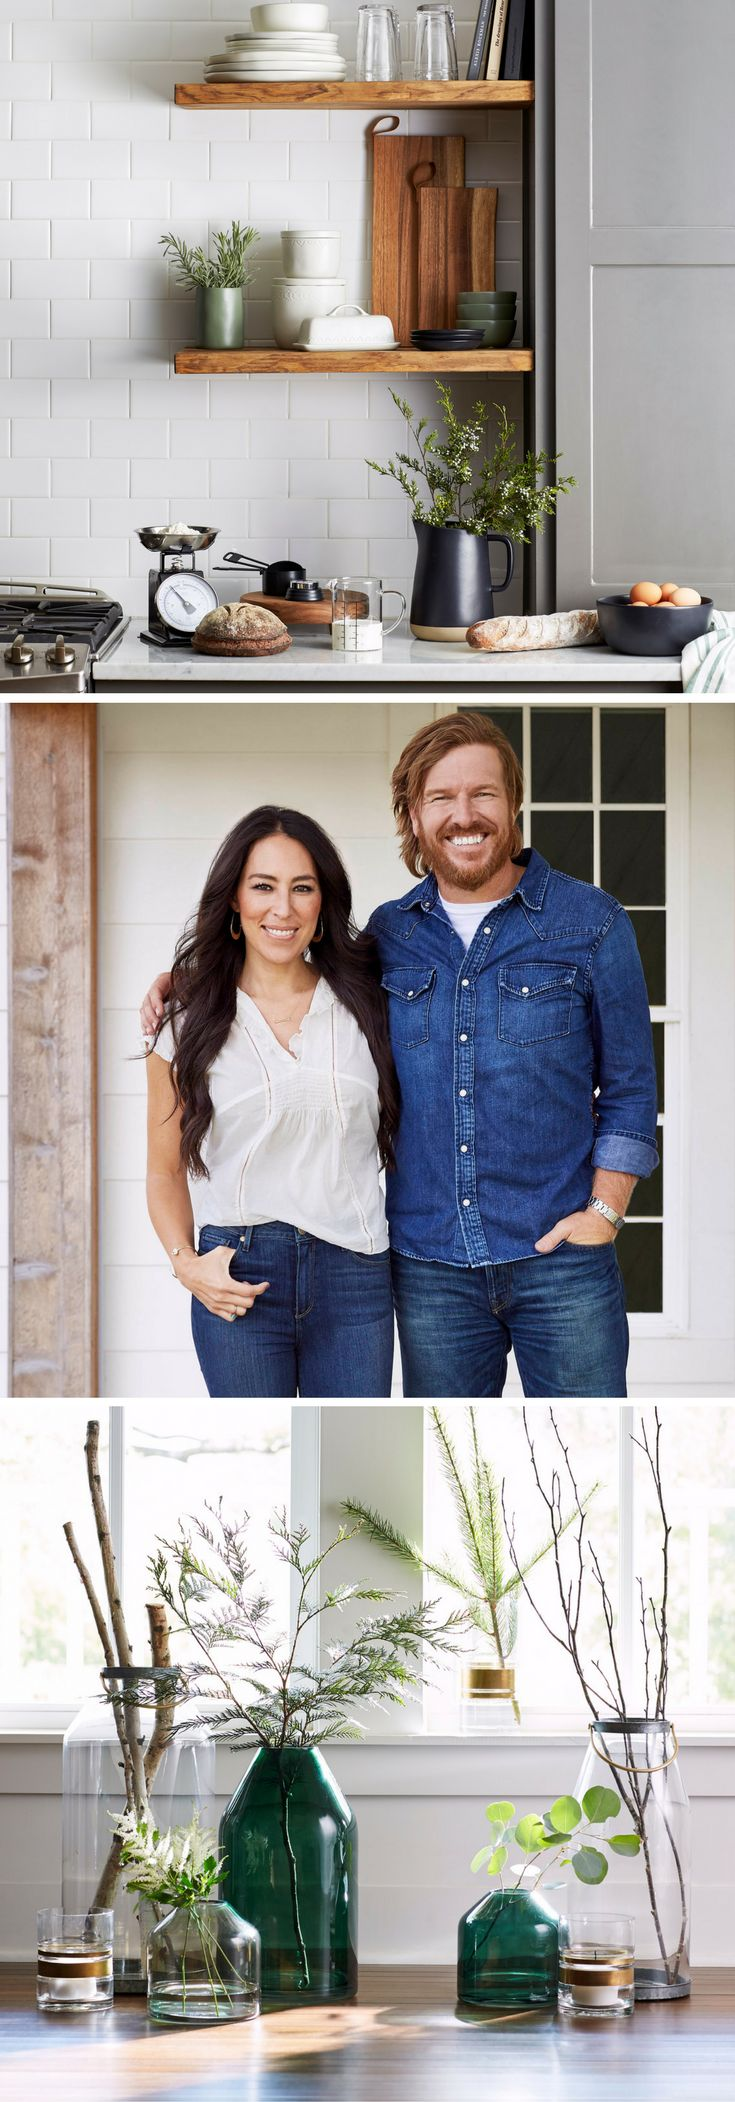 Hearth and Hand with Magnolia Debuts at Target this November. But you get a sneak peek at some of the collection now! Click to see the gorgeous decor from Chip and Joanna Gaines. Fixer Upper Fans must see this!